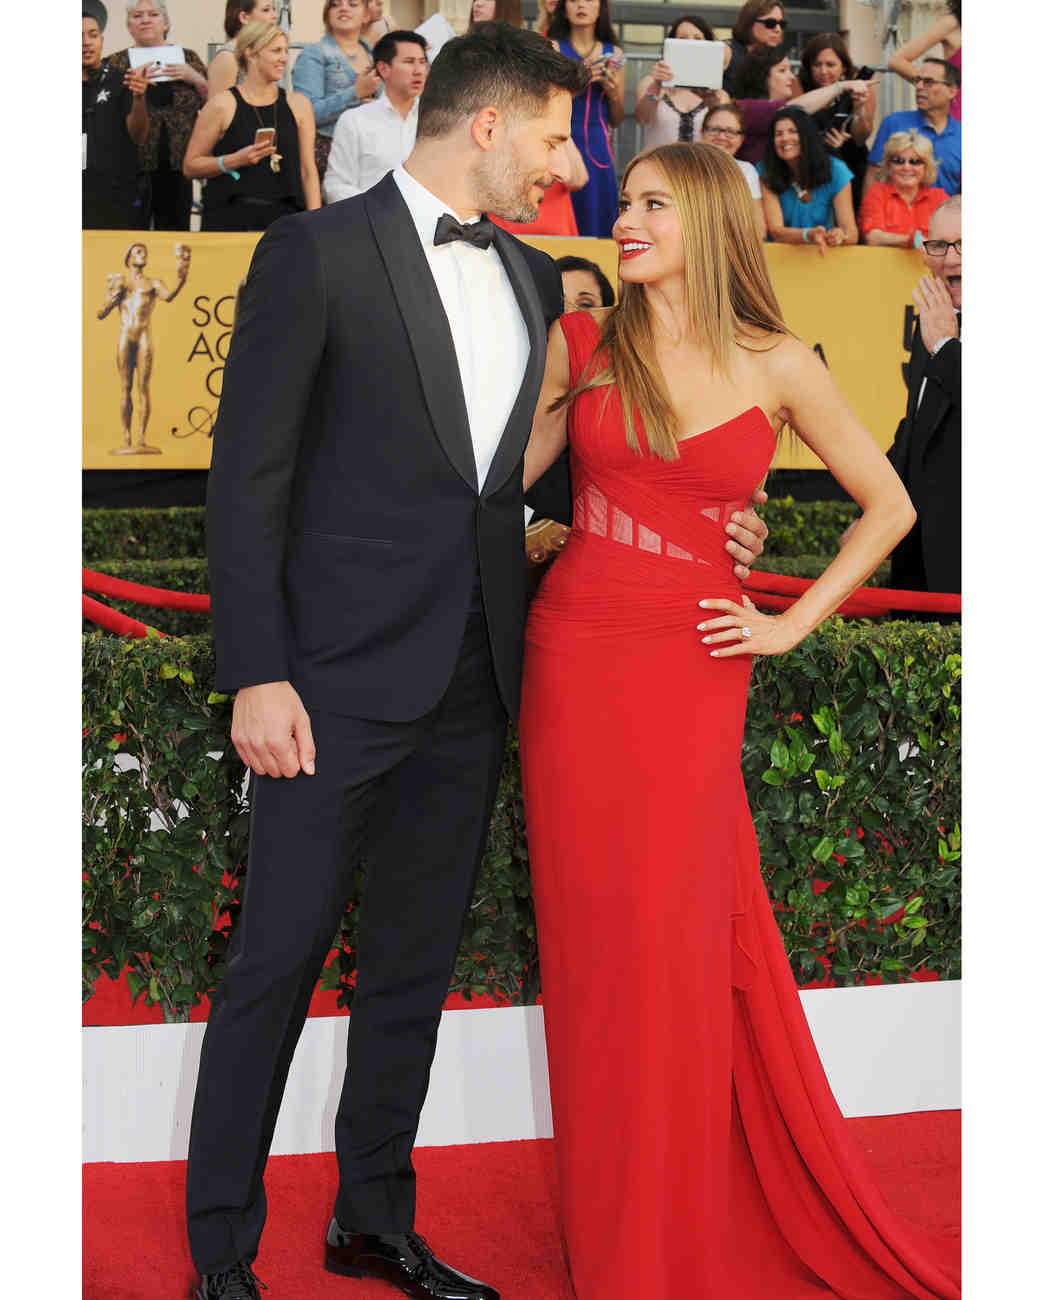 sofia-vergara-red-carpet-sag-awards-with-joe-red-vera-wang-for-homepage-0815.jpg